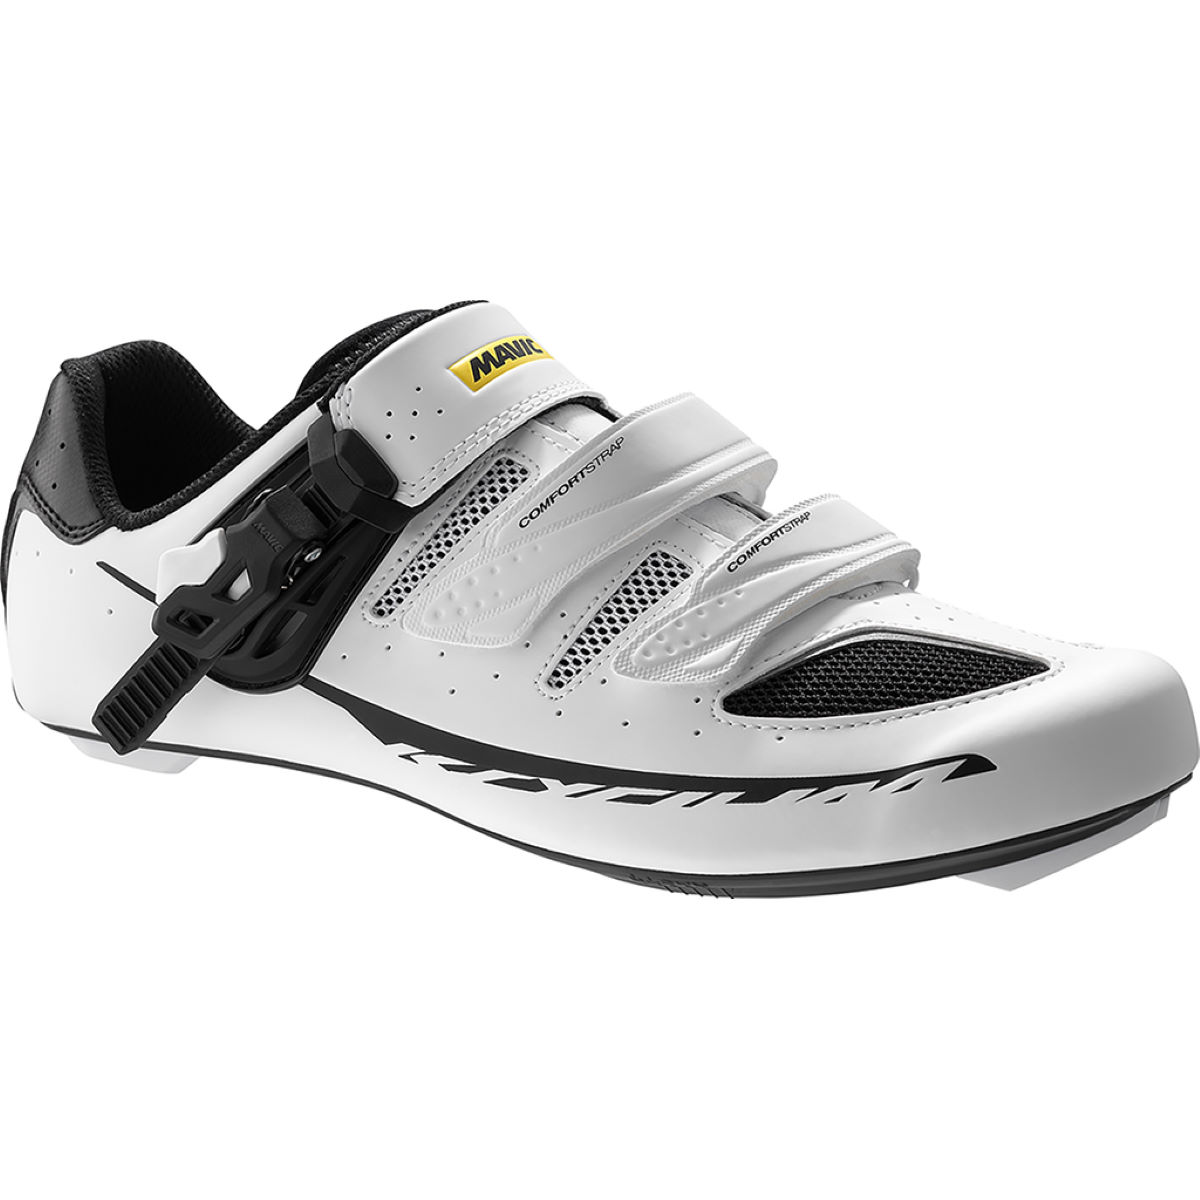 Chaussures de route Mavic Ksyrium Elite Maxi Fit II - 5,5 UK Blanc